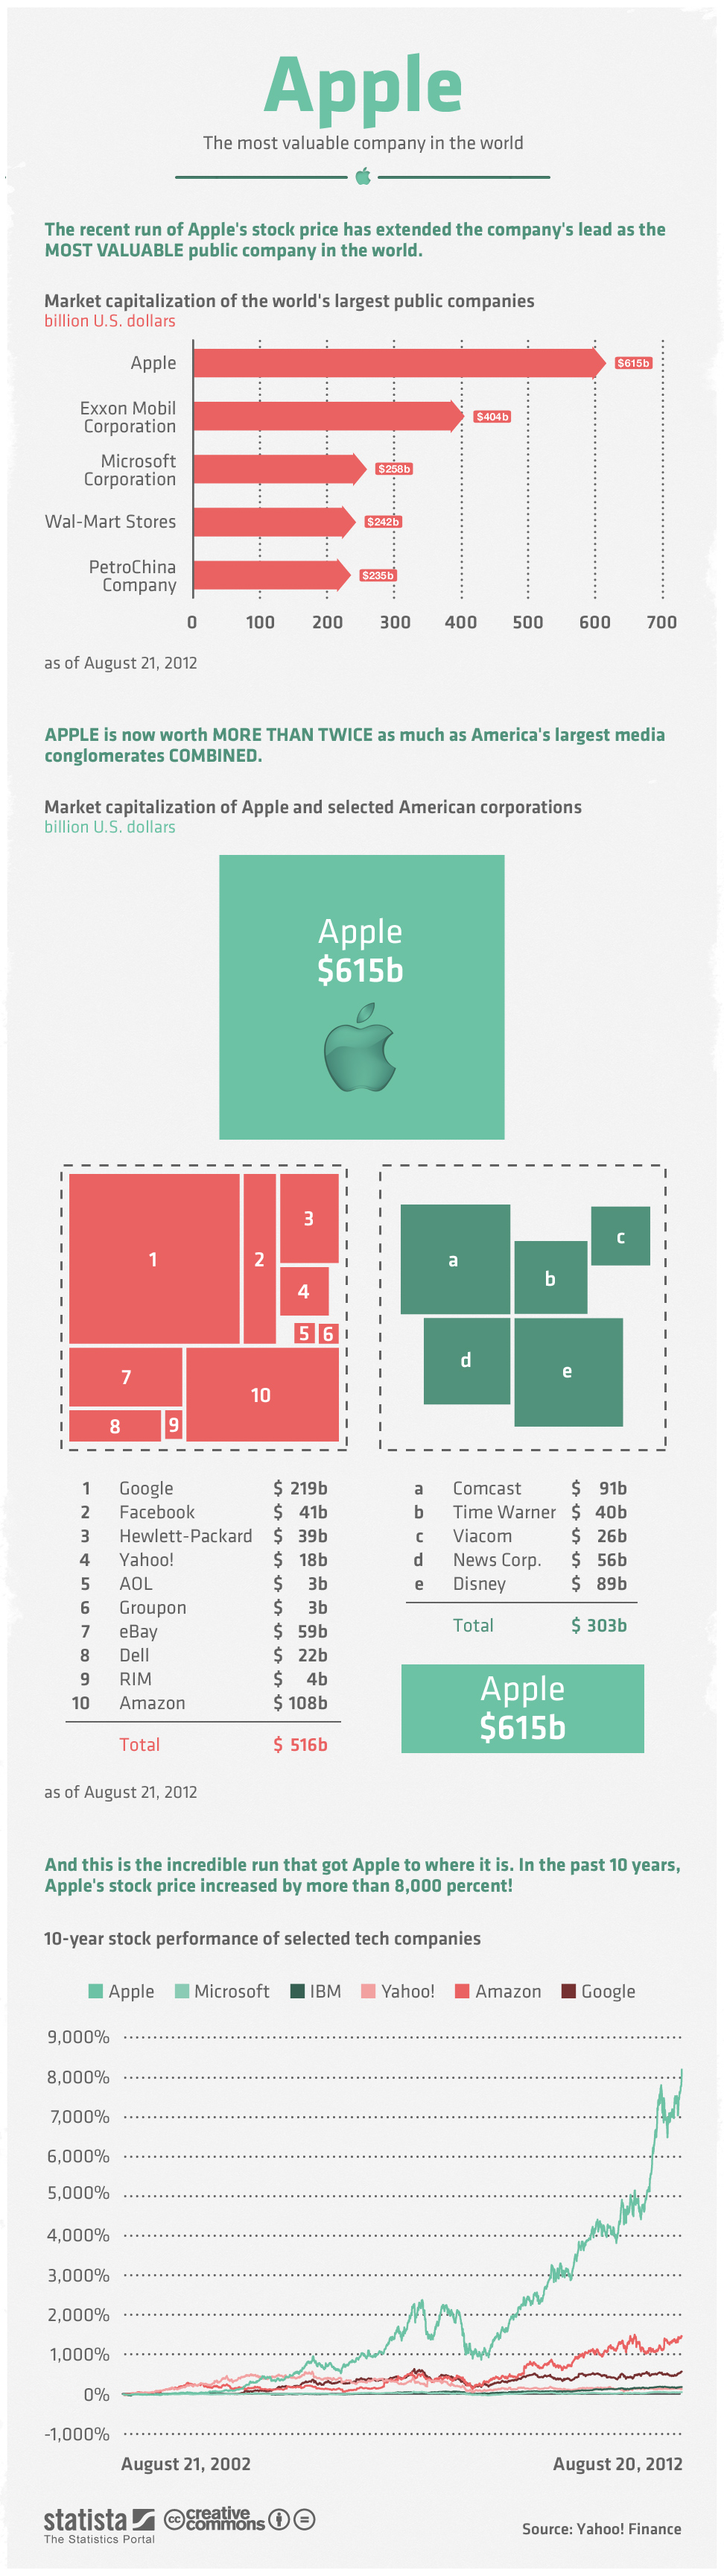 apple--the-most-valuable-company-in-the-world_503649a8d3e23